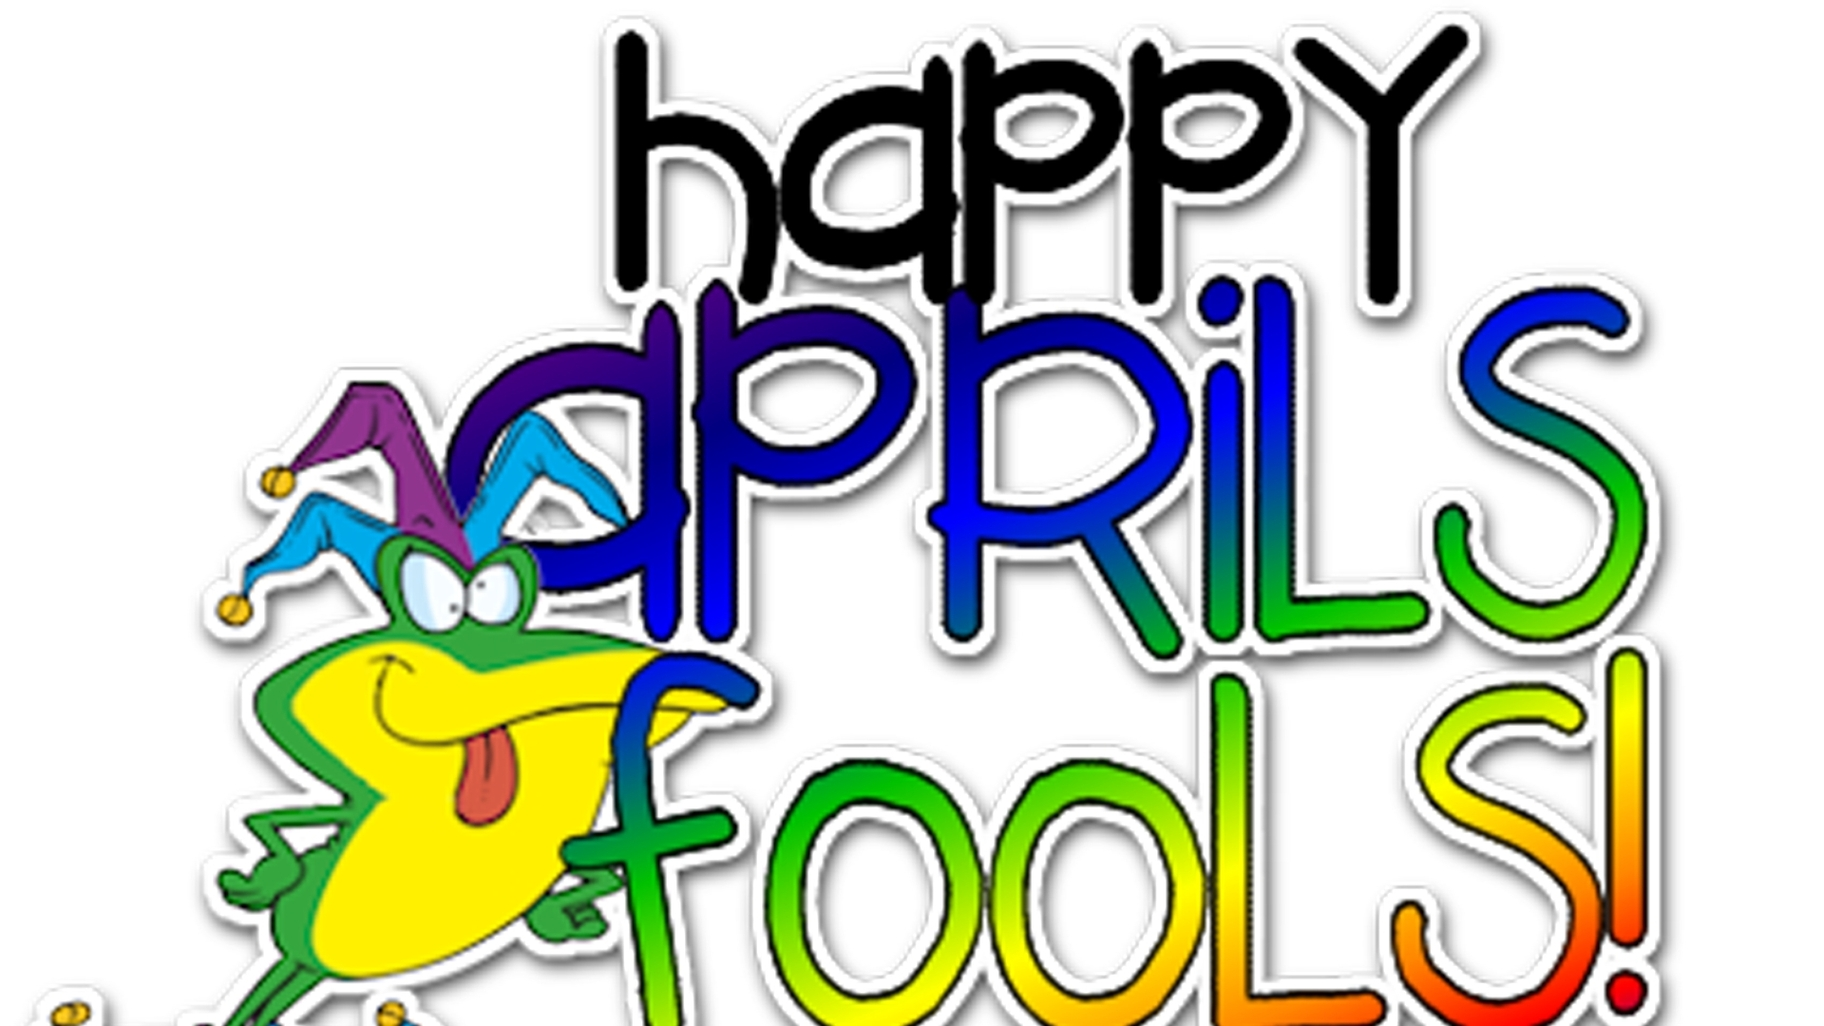 April fools clipart graphic black and white stock April Fools Day Clip Art Clipart - Free to use Clip Art Resource graphic black and white stock